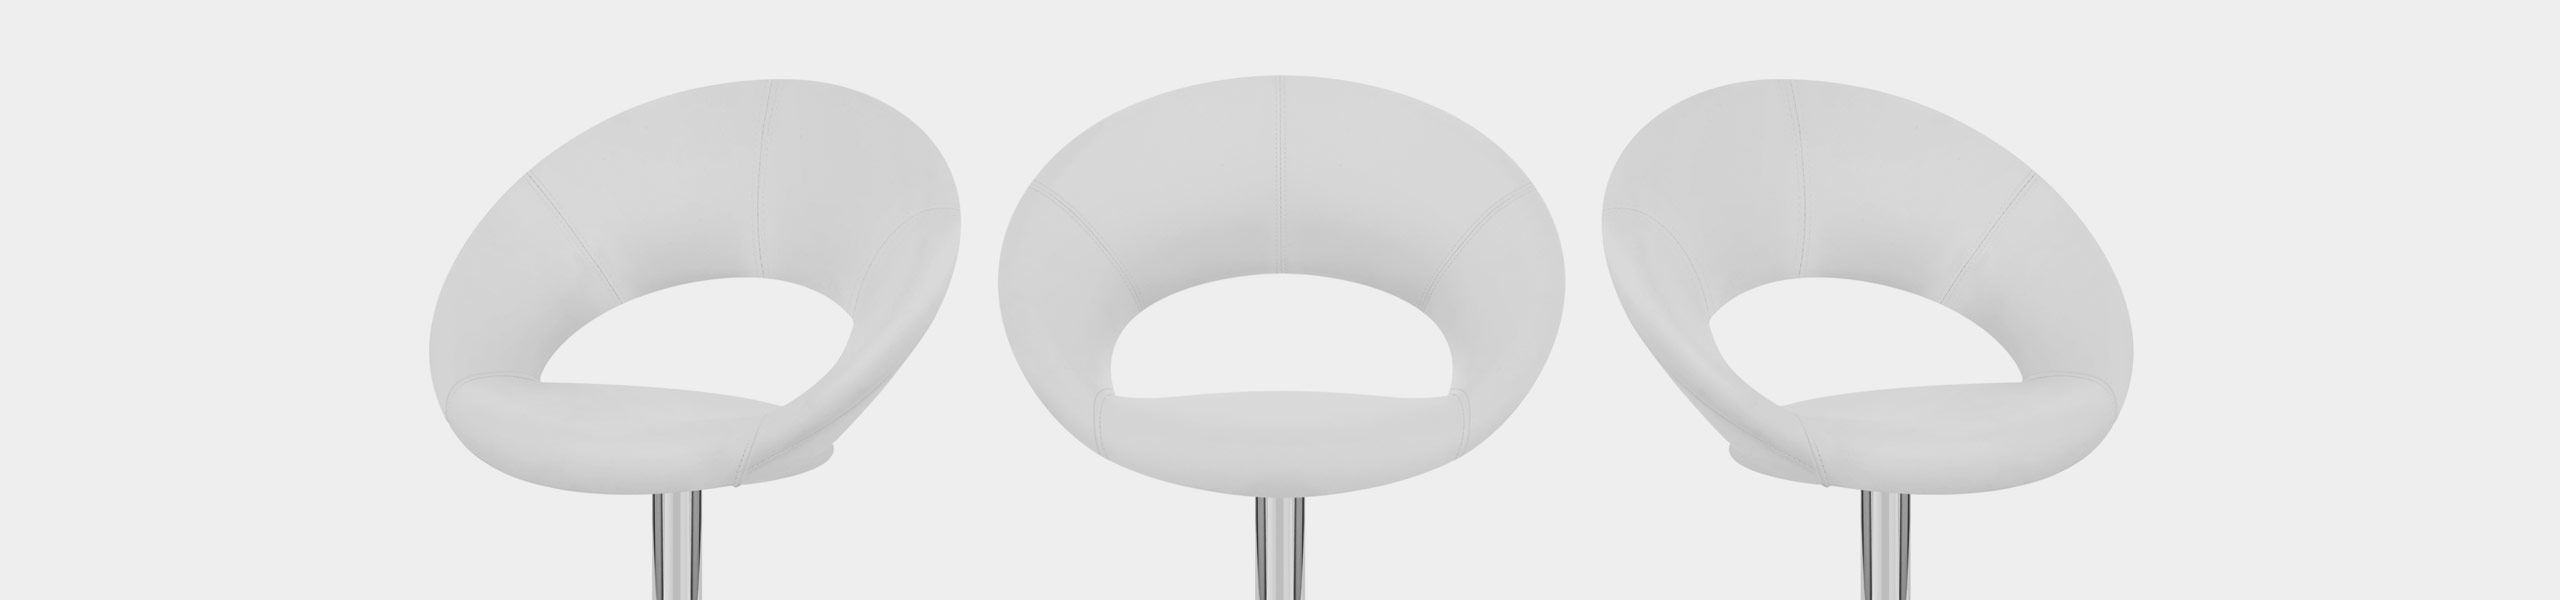 Clementine Chair White Video Banner